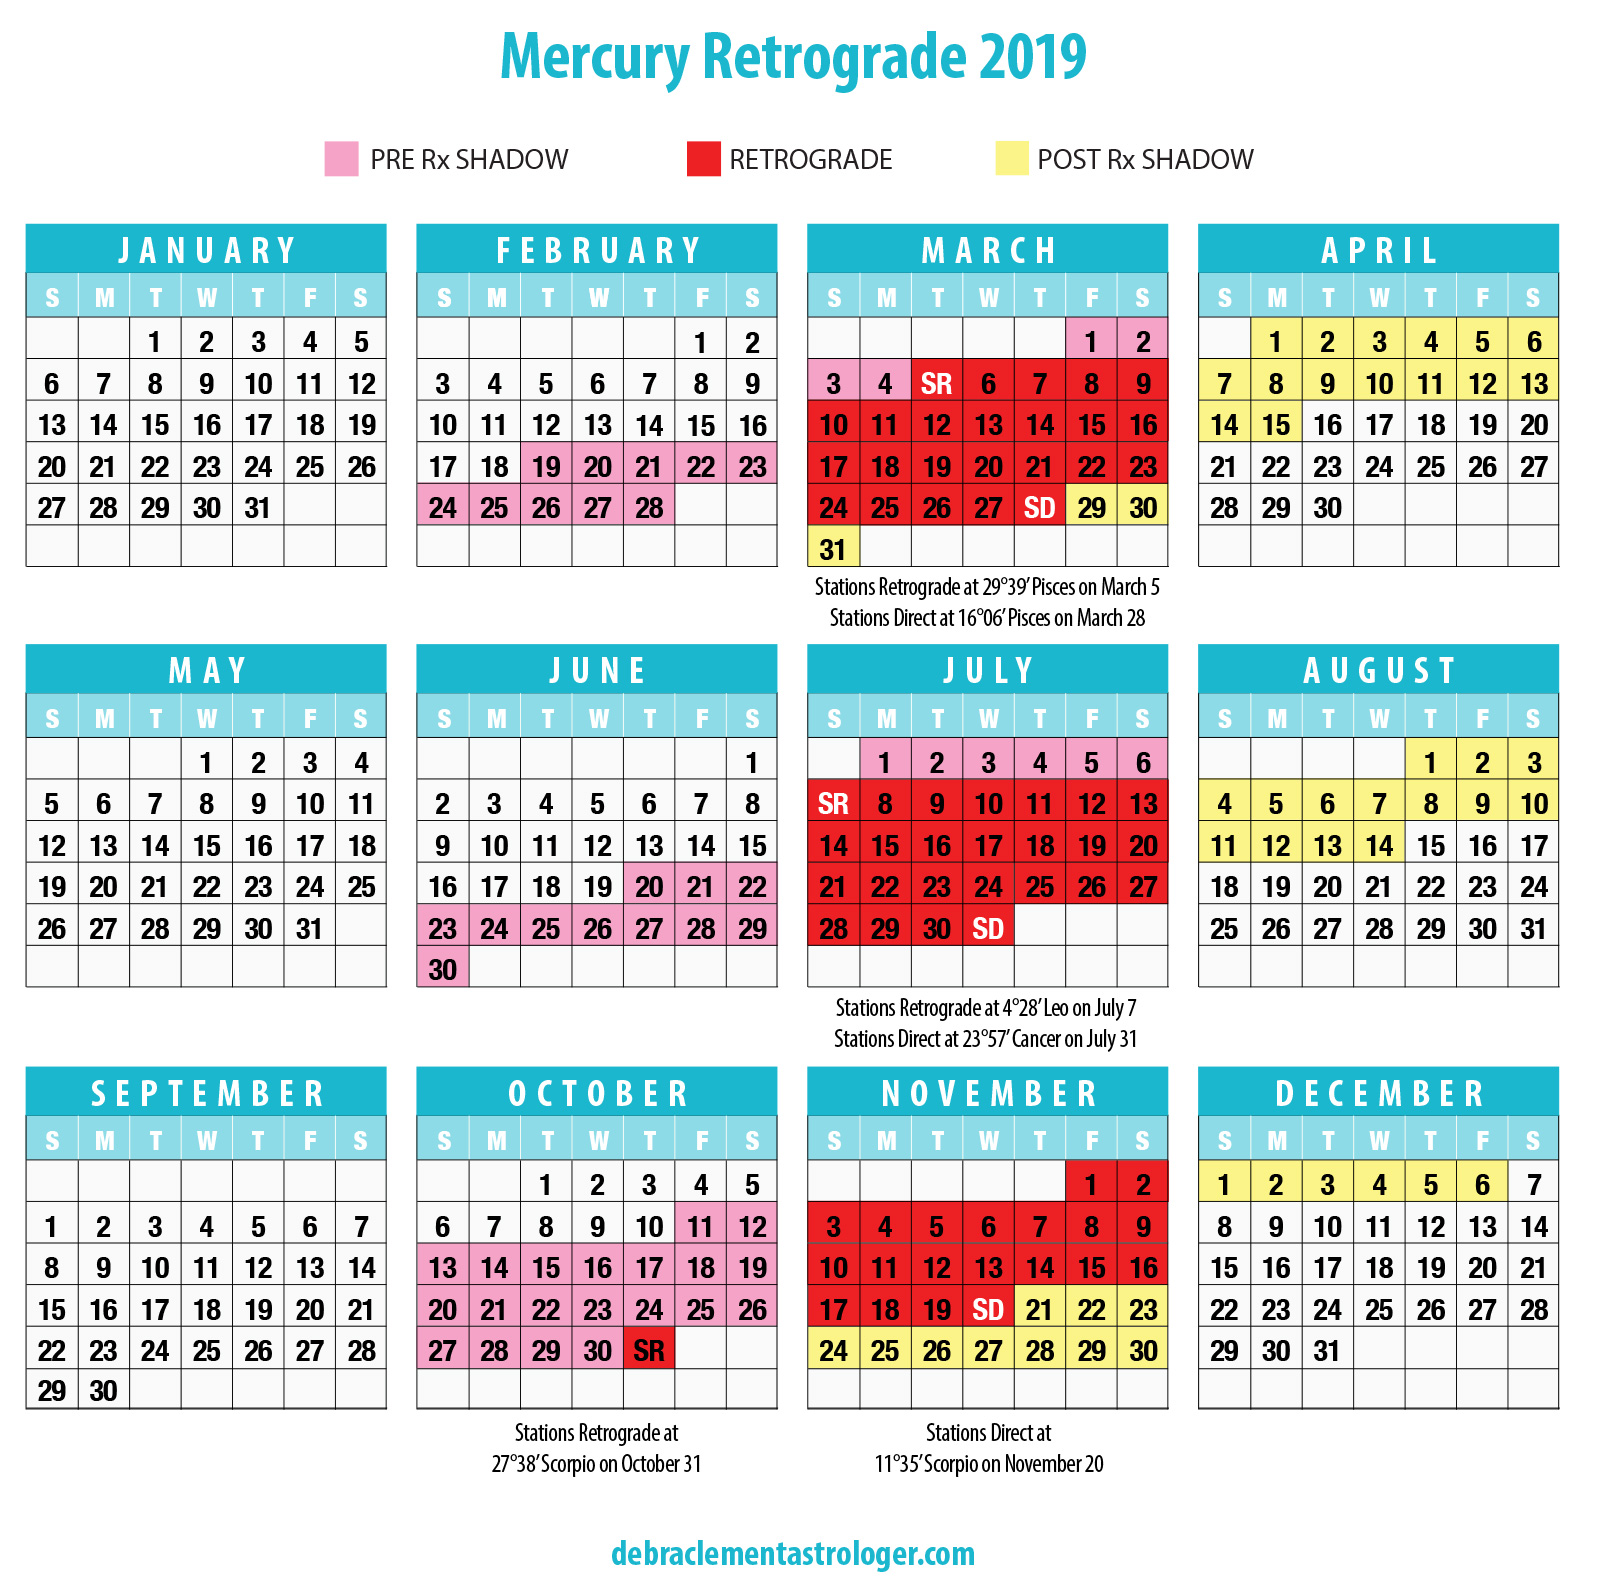 Mercury-Retrograde-2019